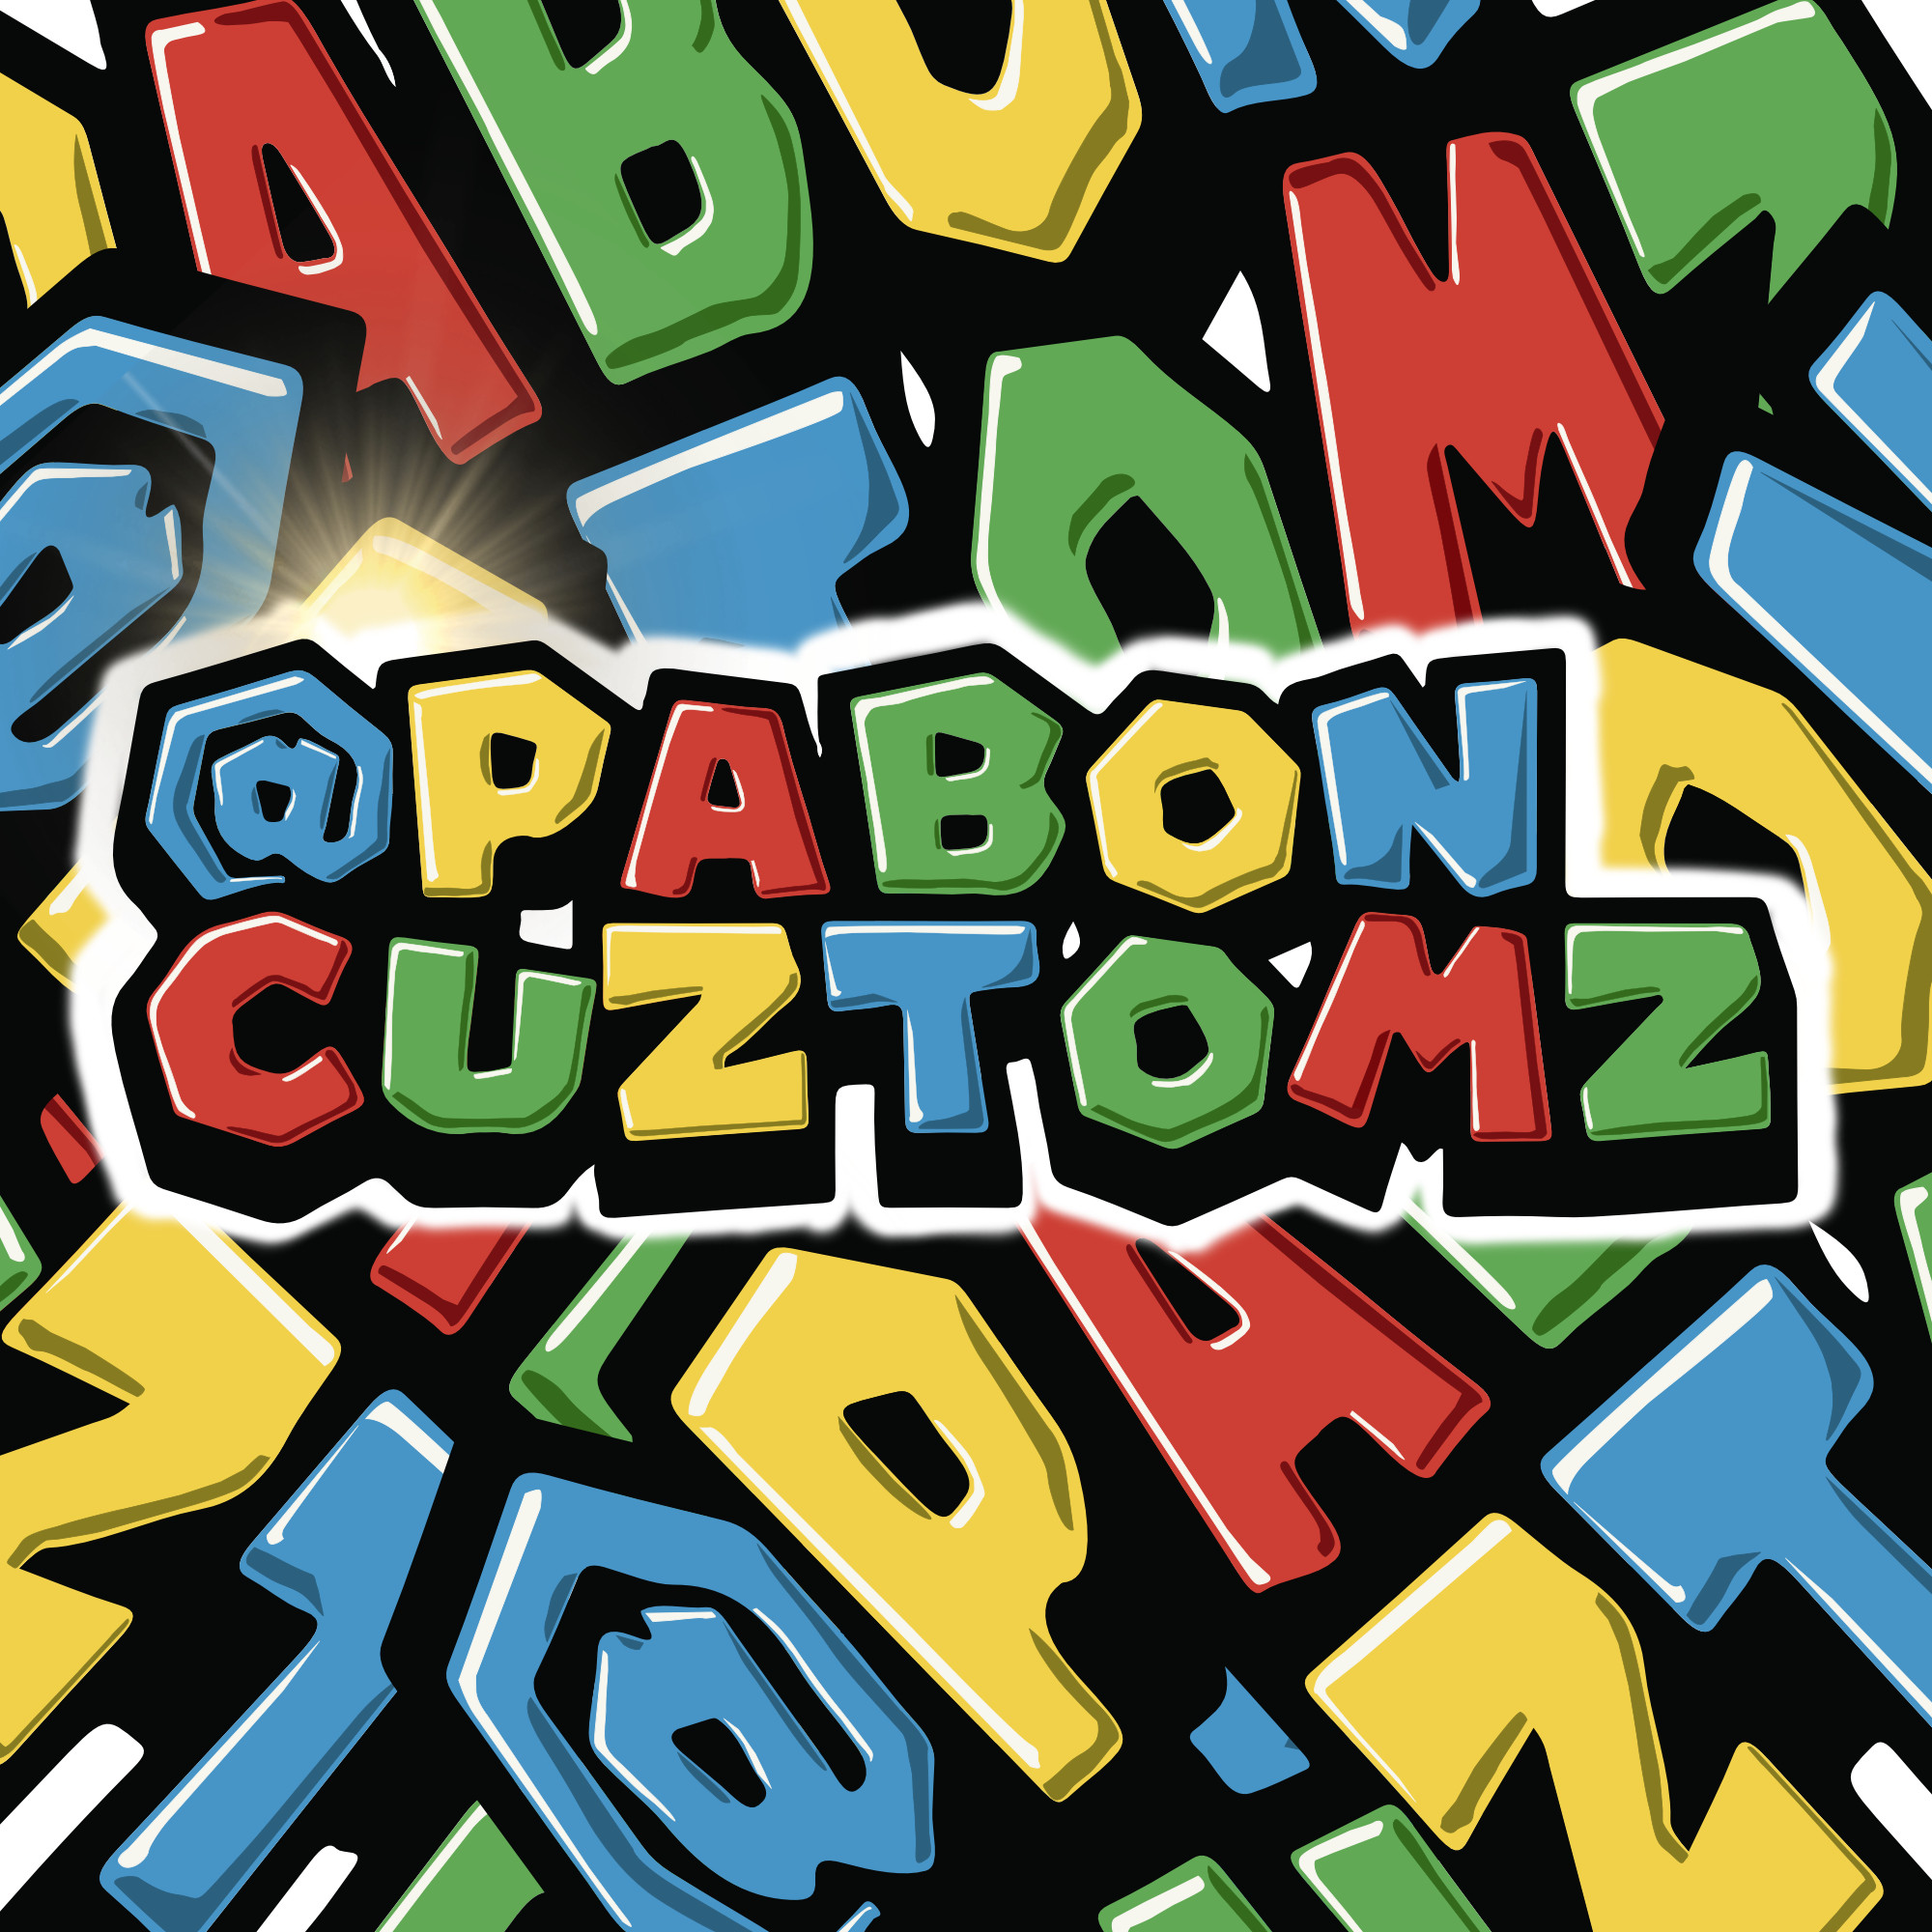 Logo re-design for @Pabon Cuztomz.